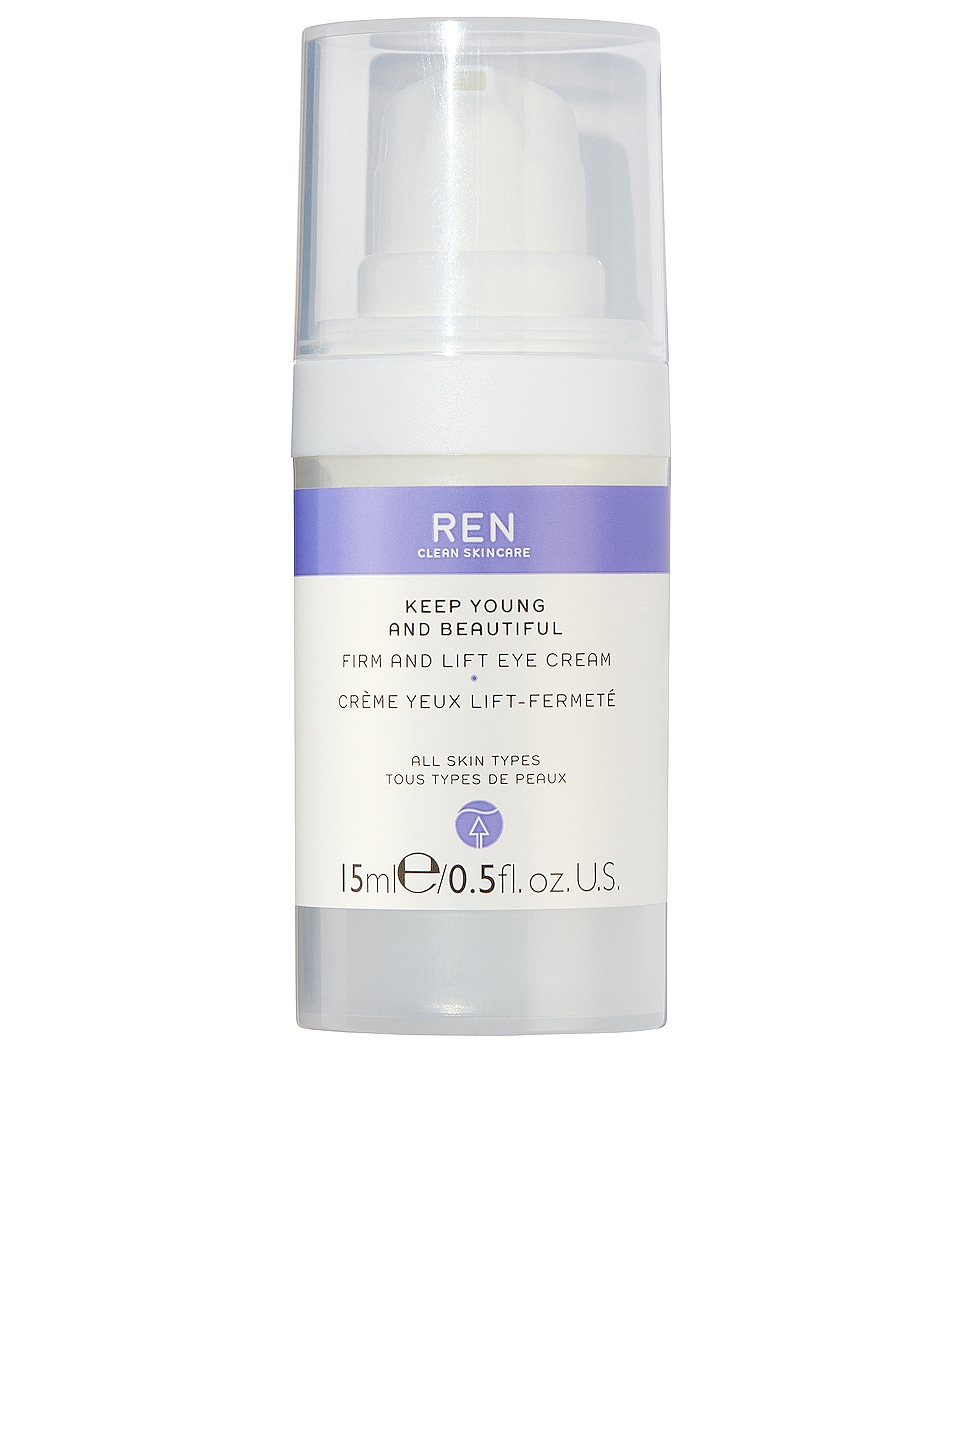 REN Clean Skincare Keep Young and Beautiful Firm and Lift Eye Cream